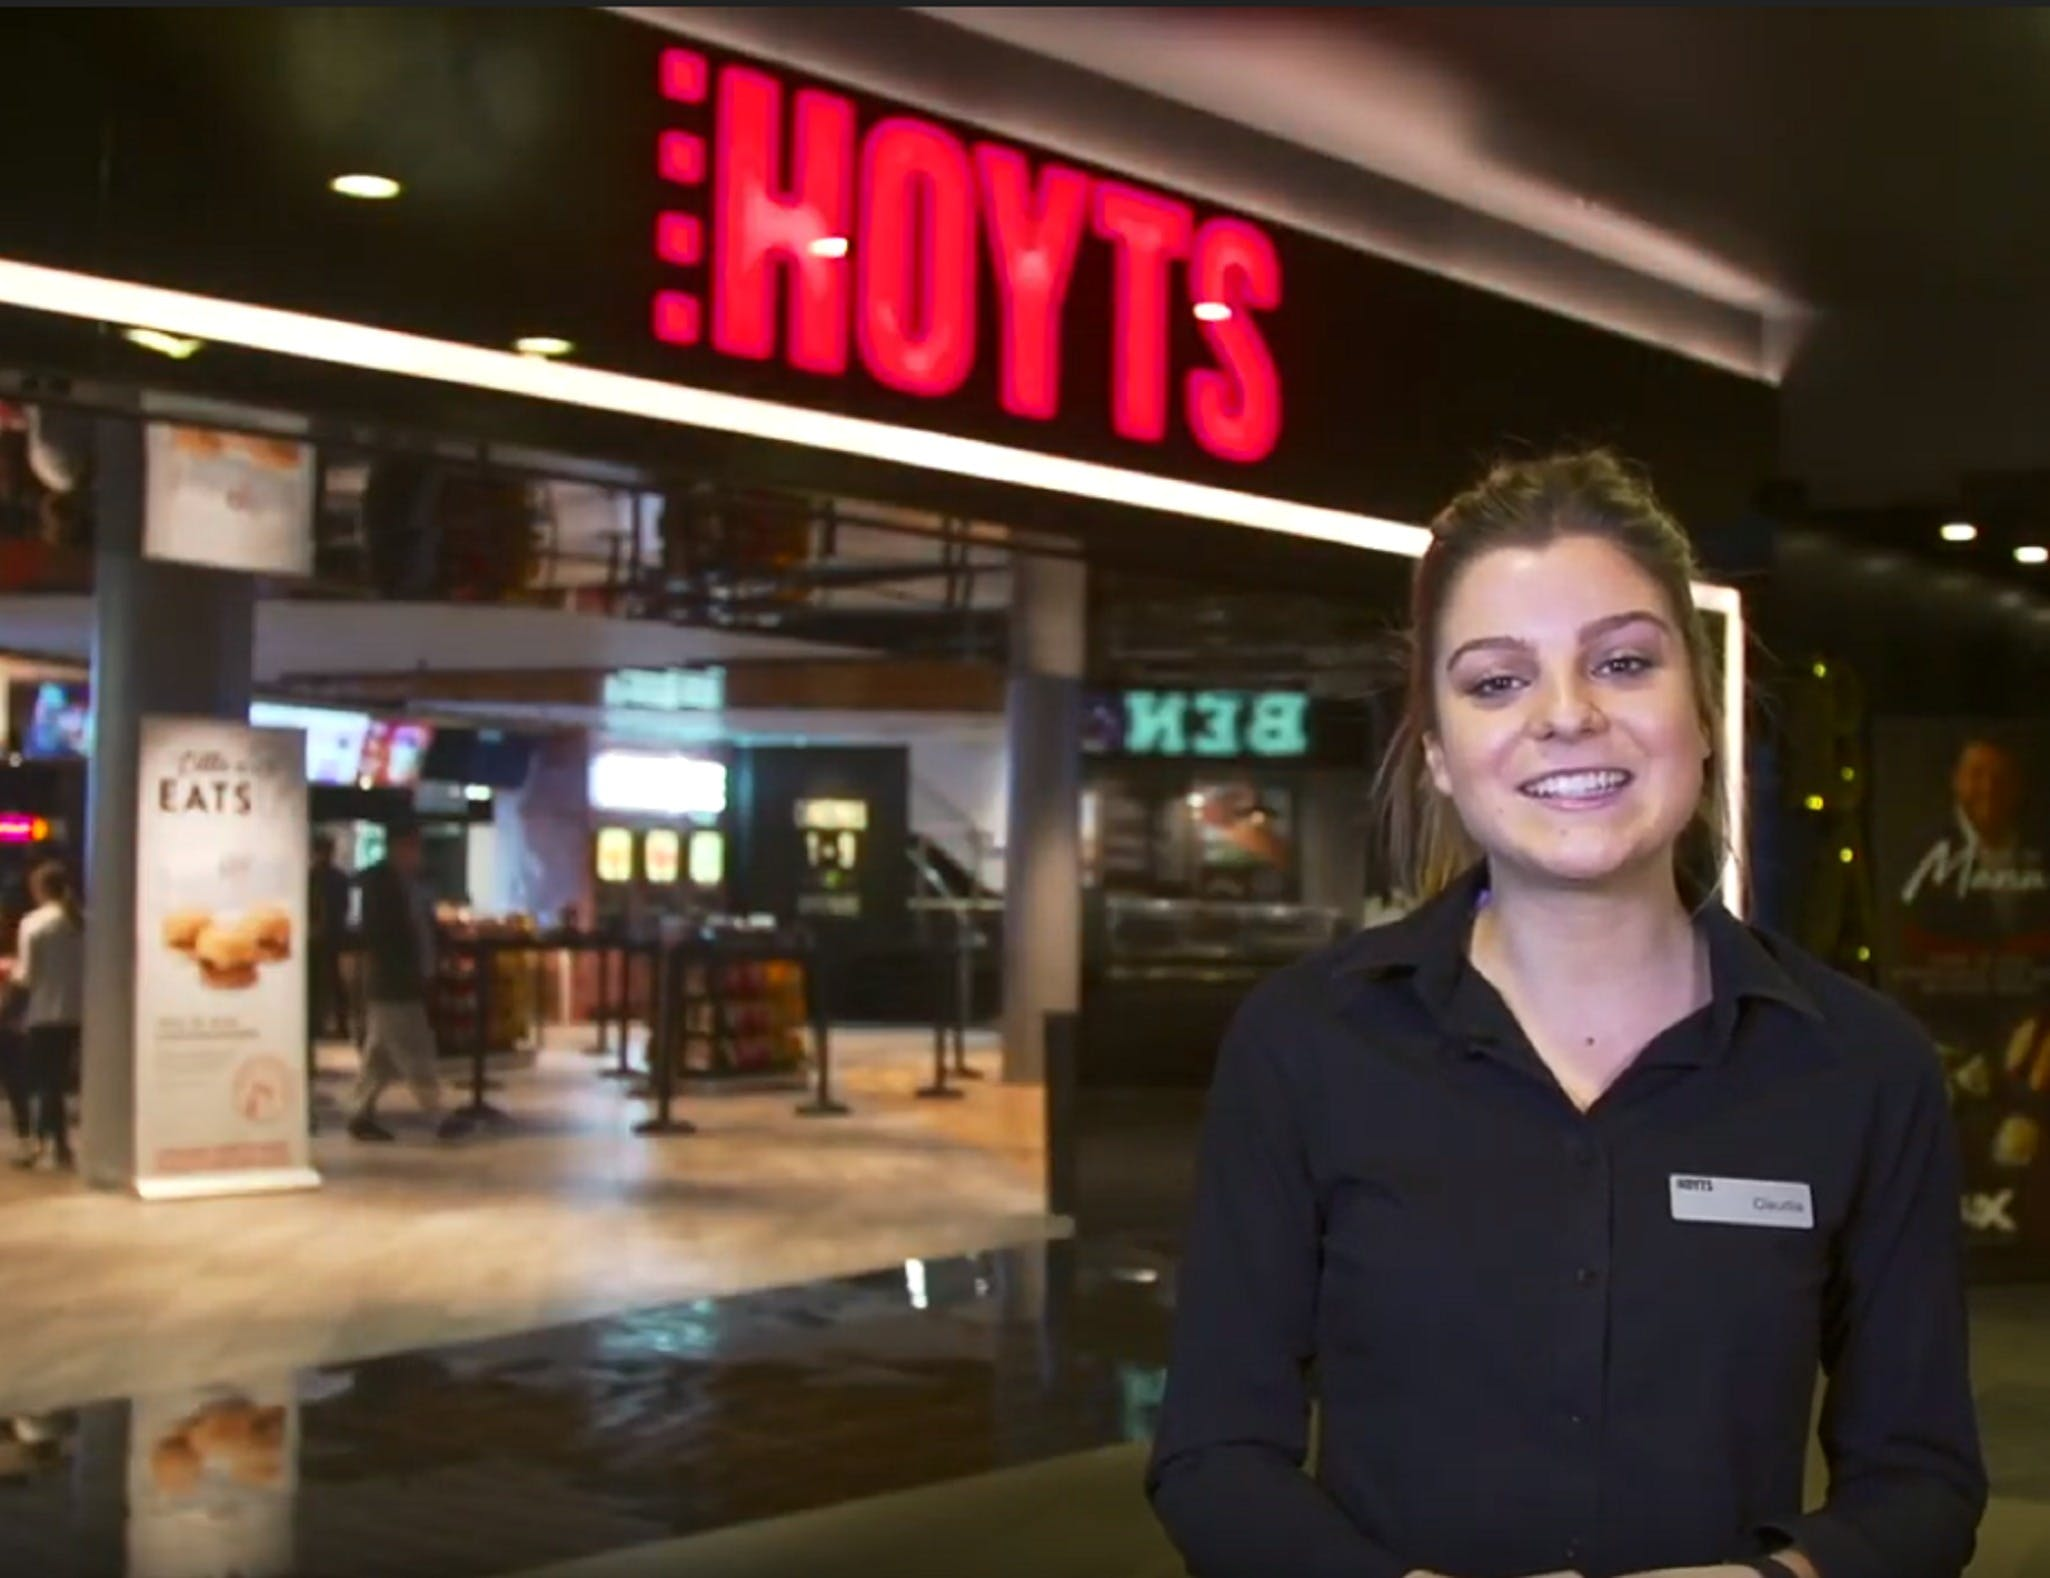 HOYTS - Carousel - Attractions